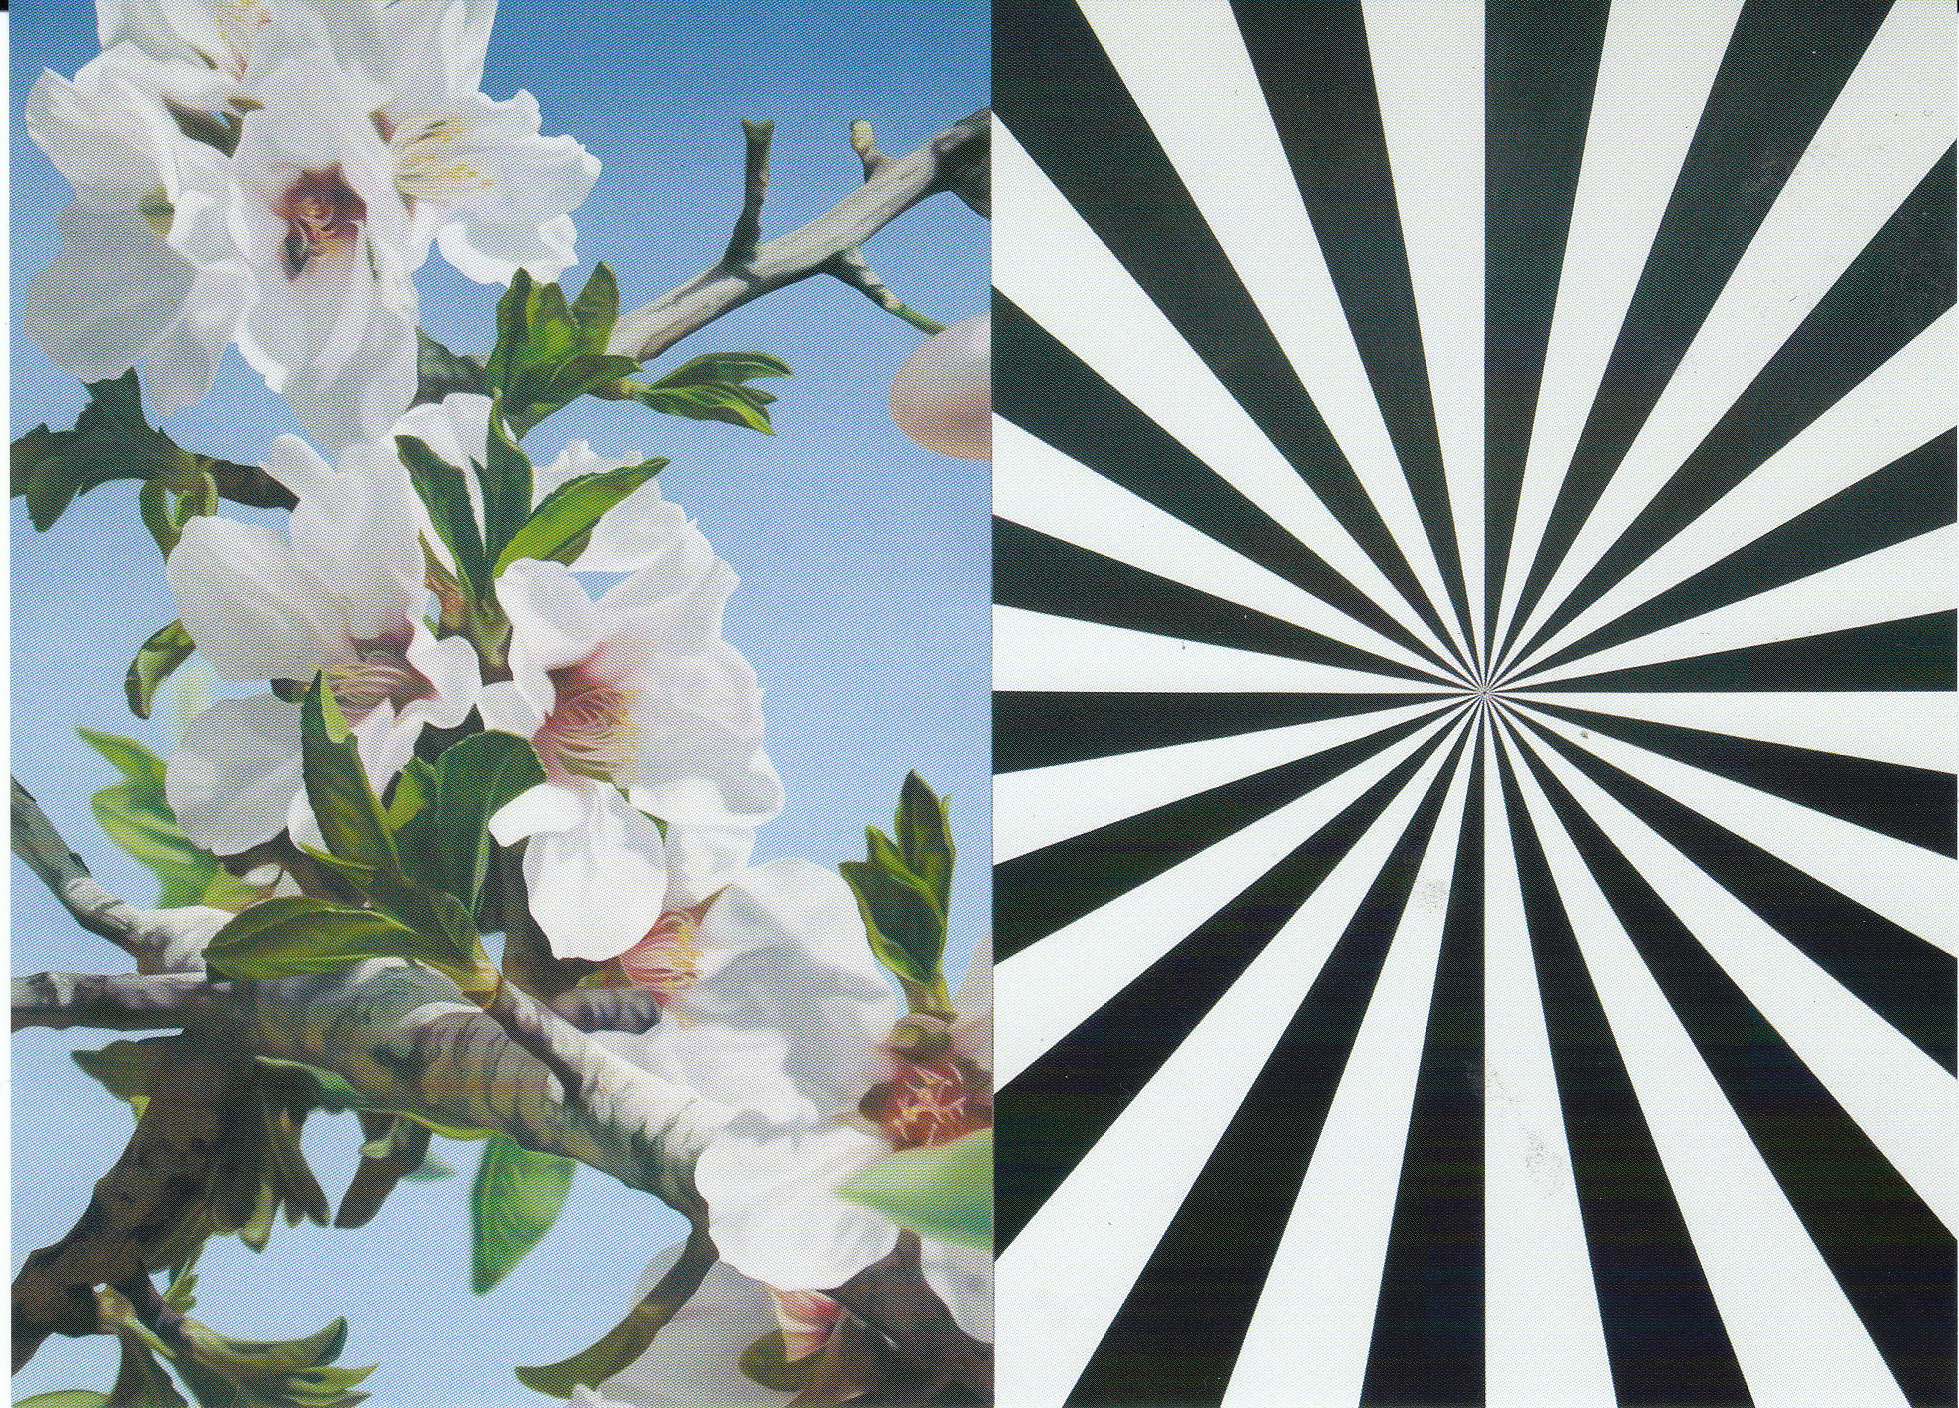 Exstacy Almond Blossom 3 (L)' by Mustafa Hulusi